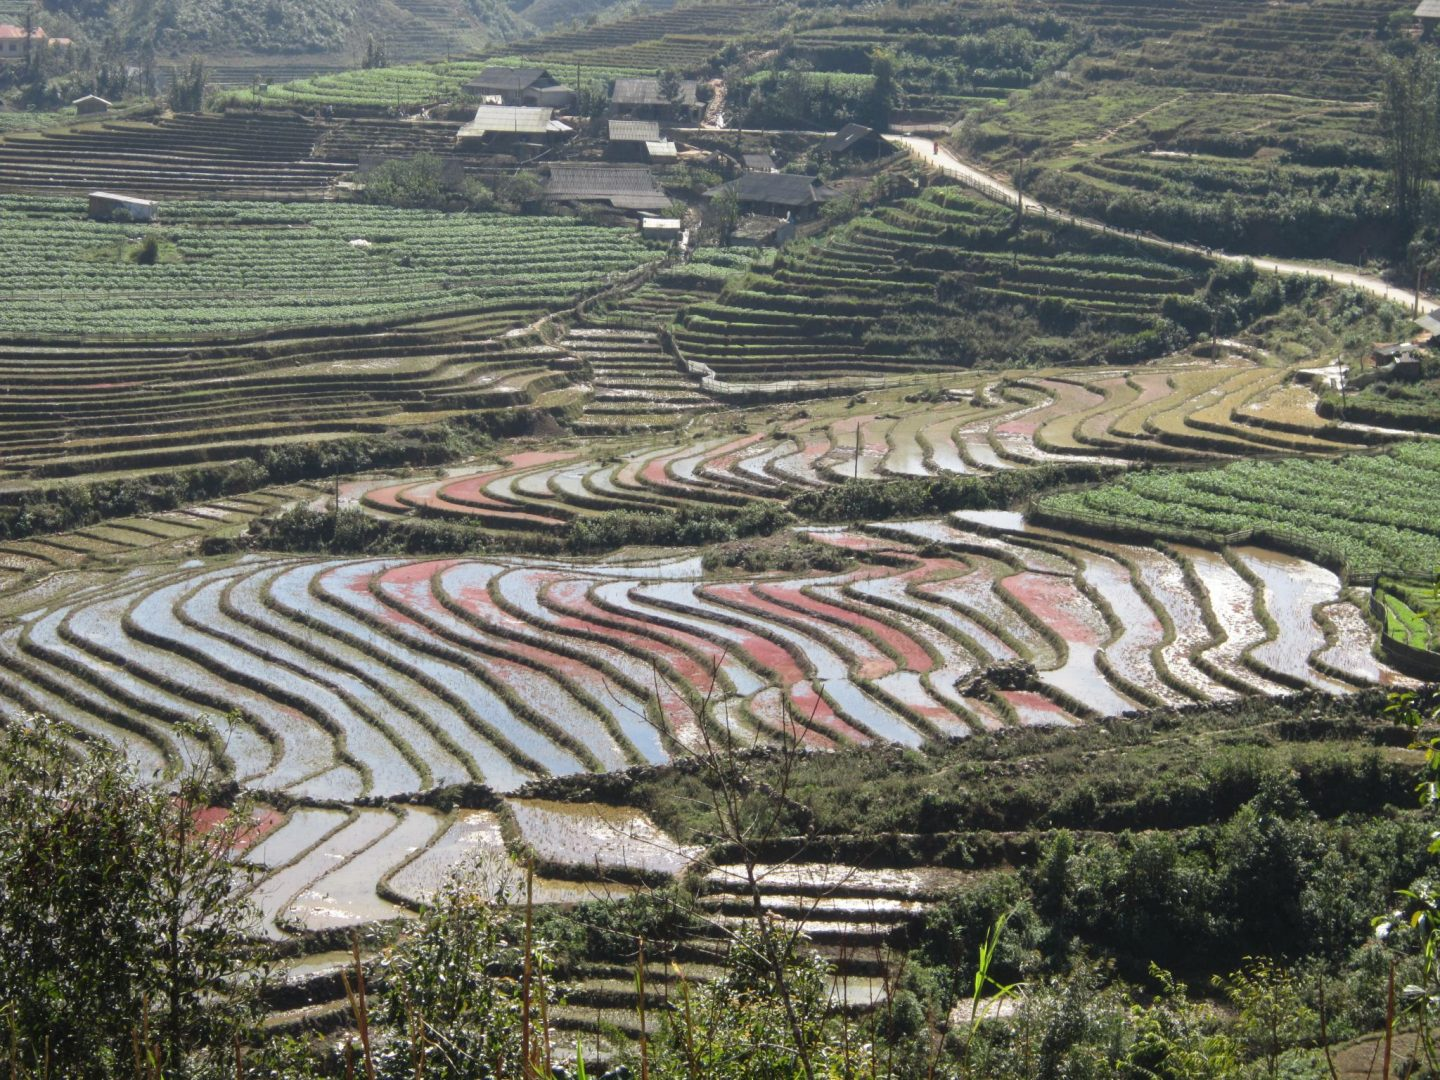 The rice terraces of SaPa - a must see on any Vietnam Backpacking Itinerary